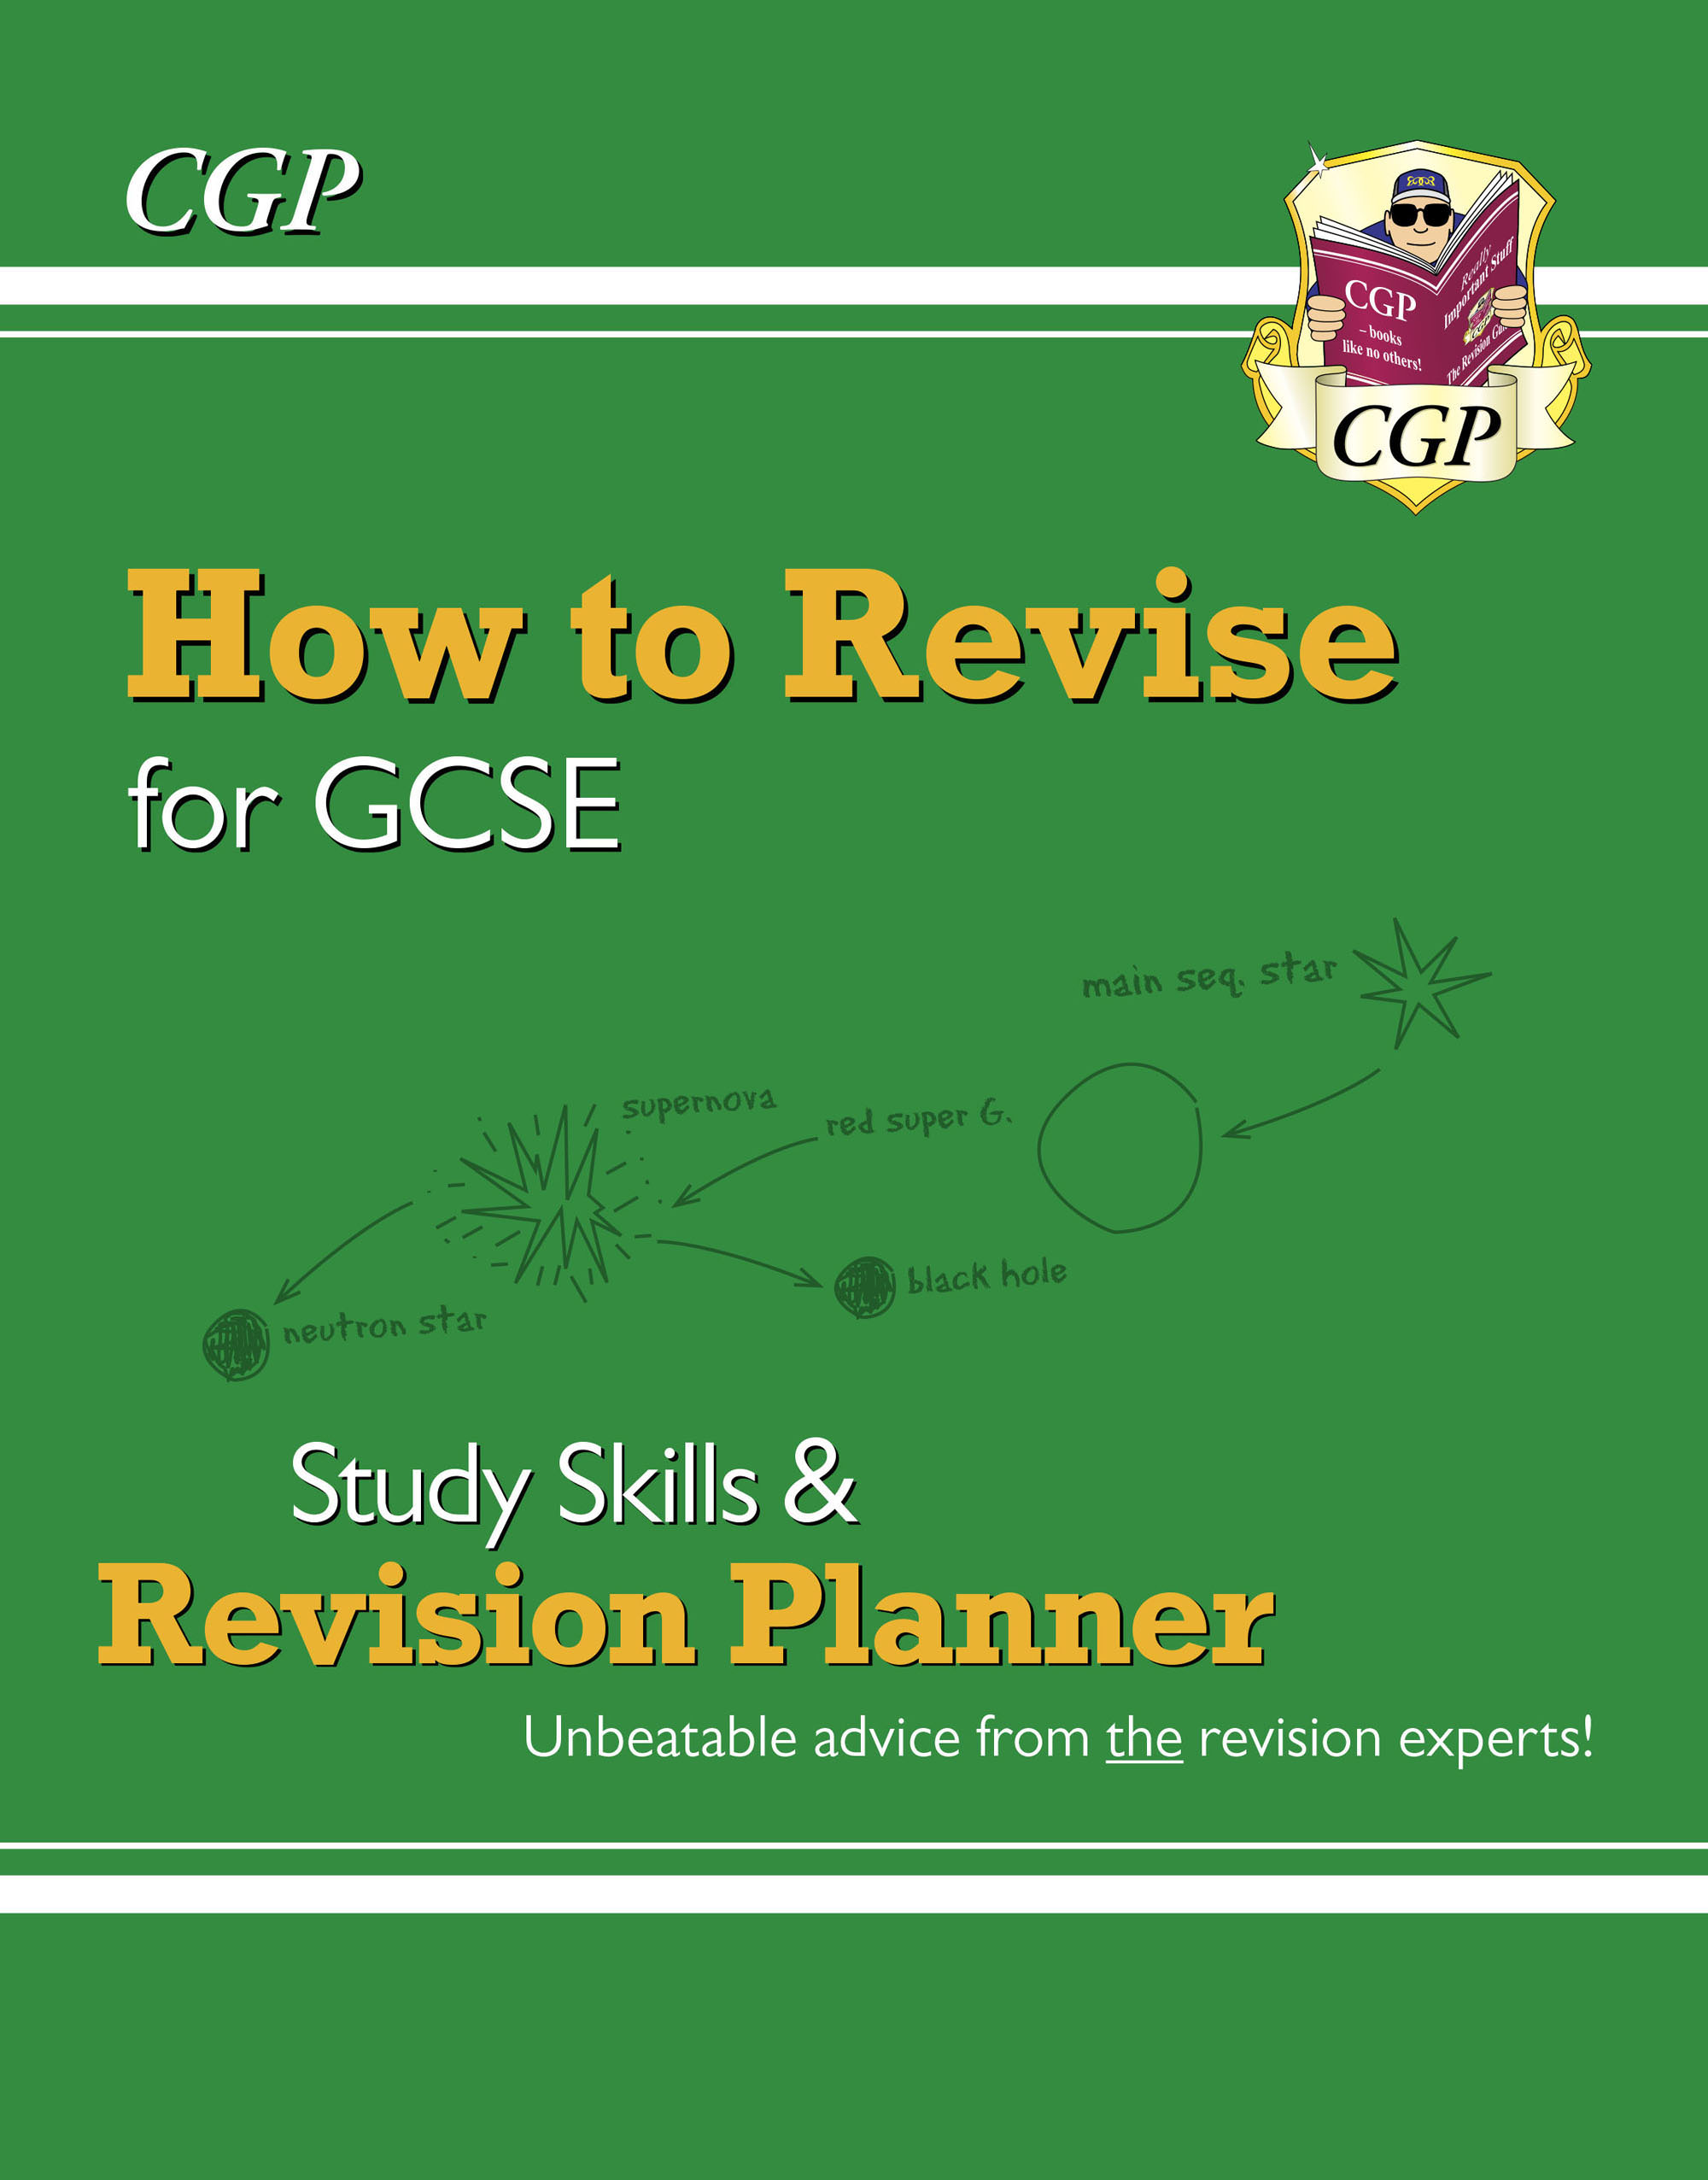 XHR41DK - How to Revise for GCSE: Study Skills & Planner - from CGP, the Revision Experts Online Ed